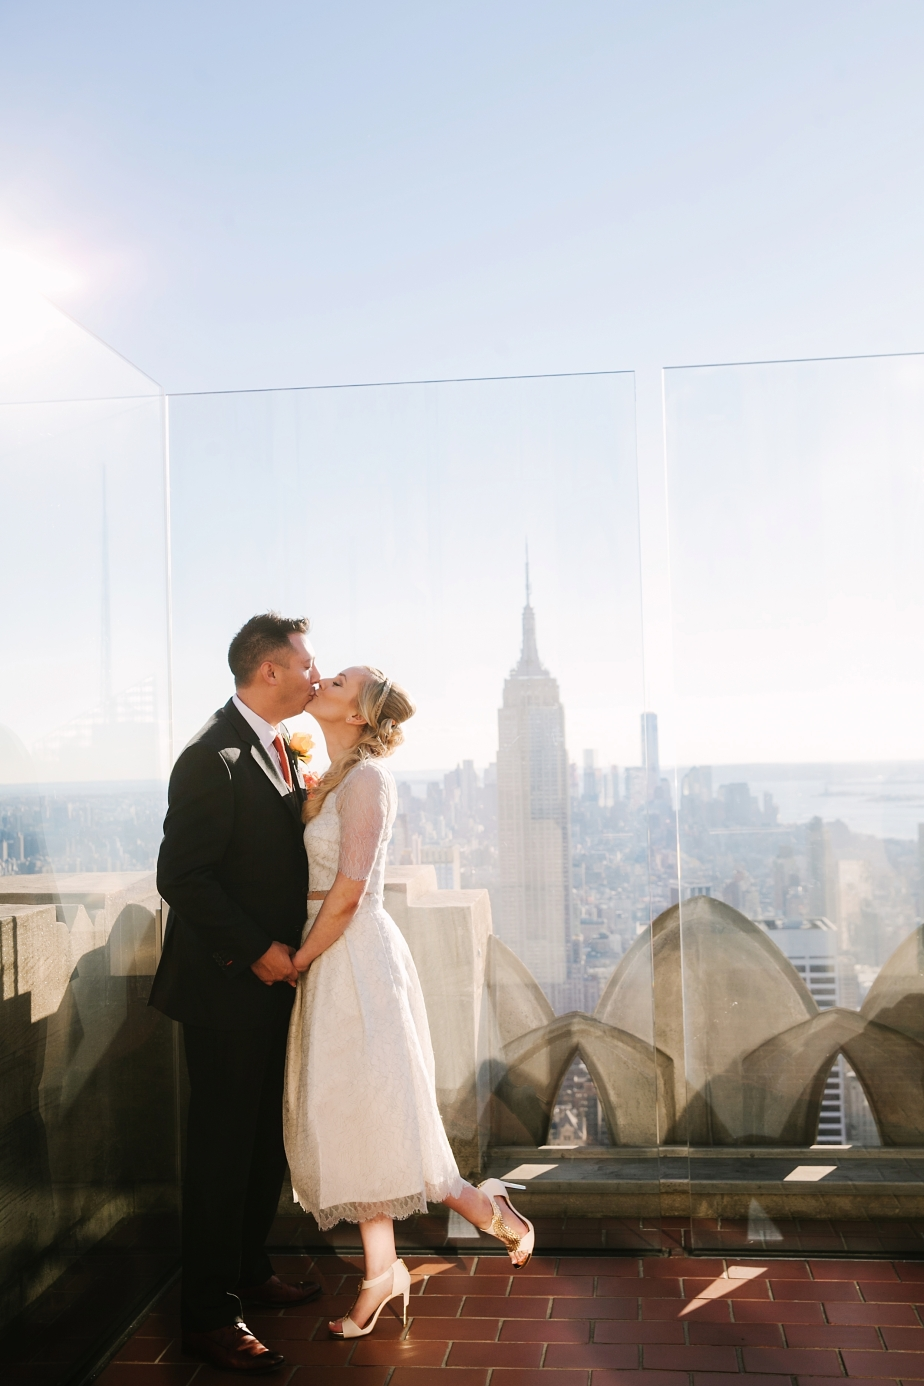 centralpark_ladiespavilion_wedding_SD-311